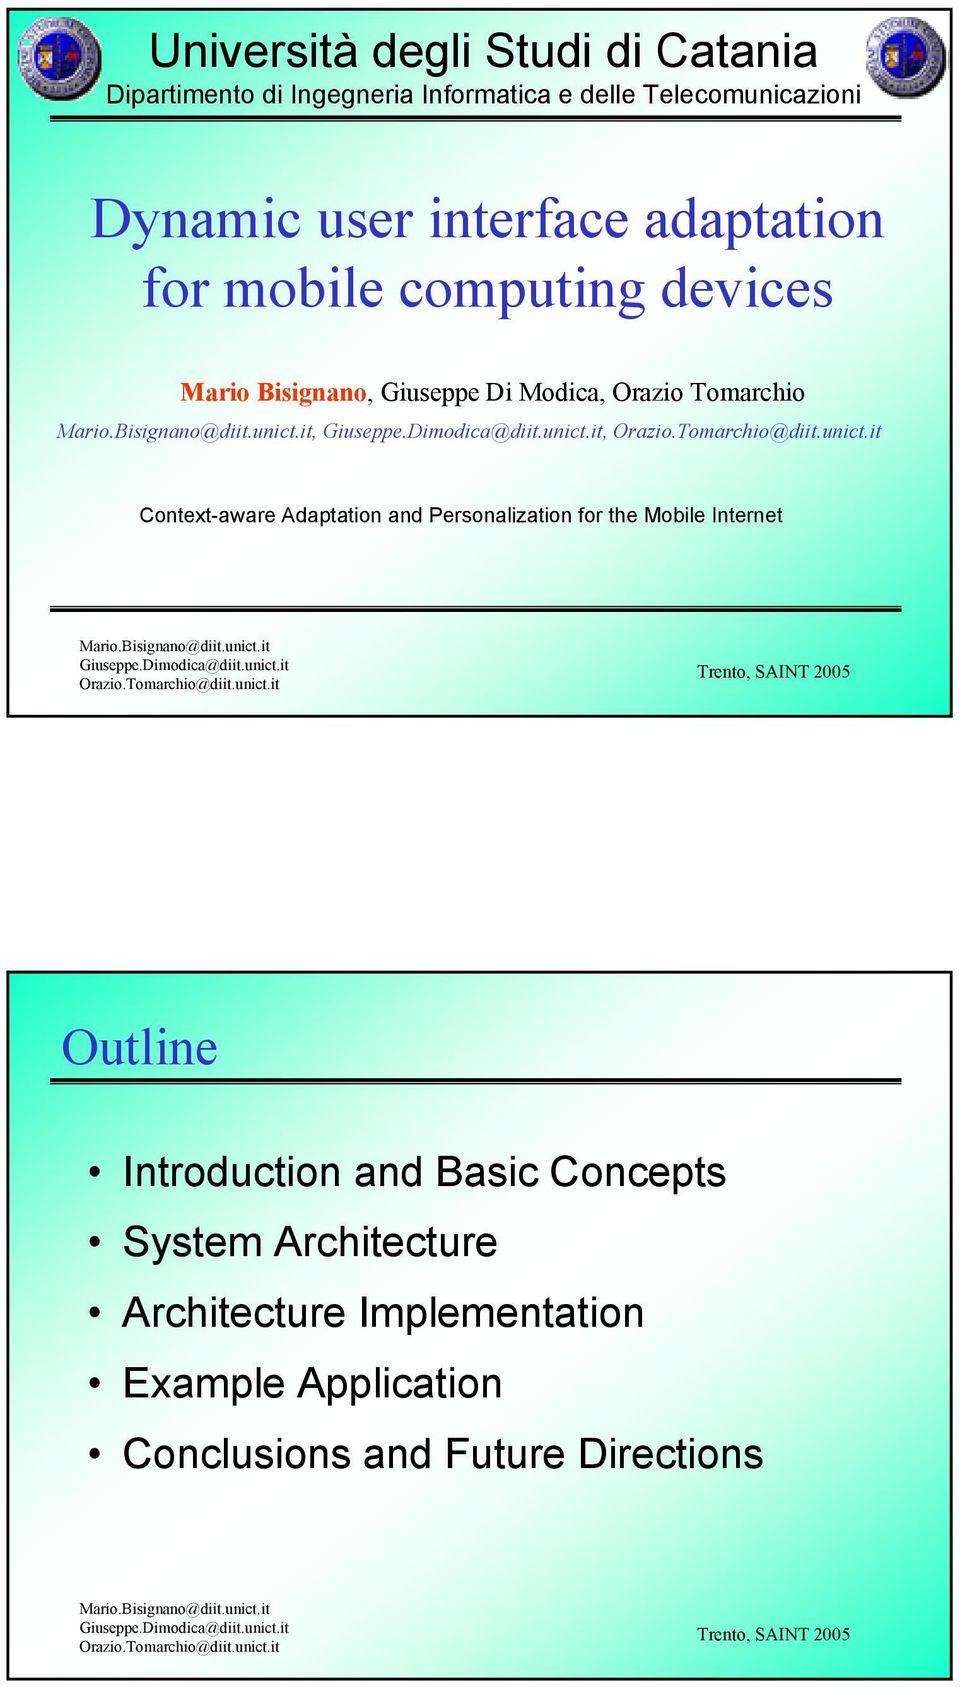 Tomarchio,, Context-aware Adaptation and Personalization for the Mobile Internet Outline Introduction and